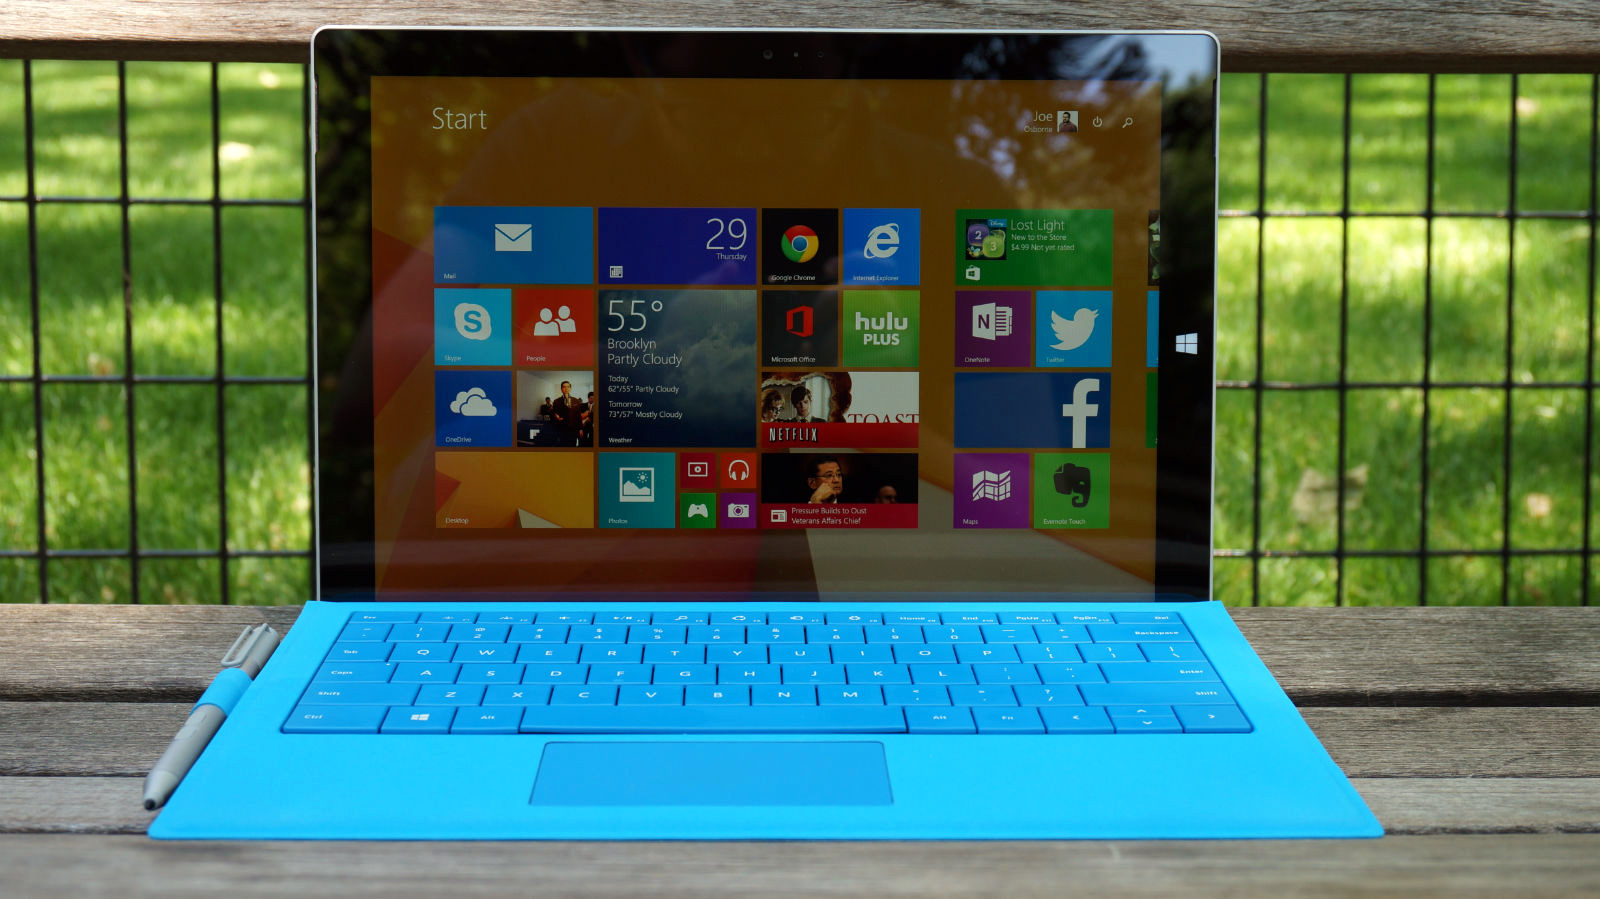 Fresh firmware update just made your Surface Pro 3 a whole lot